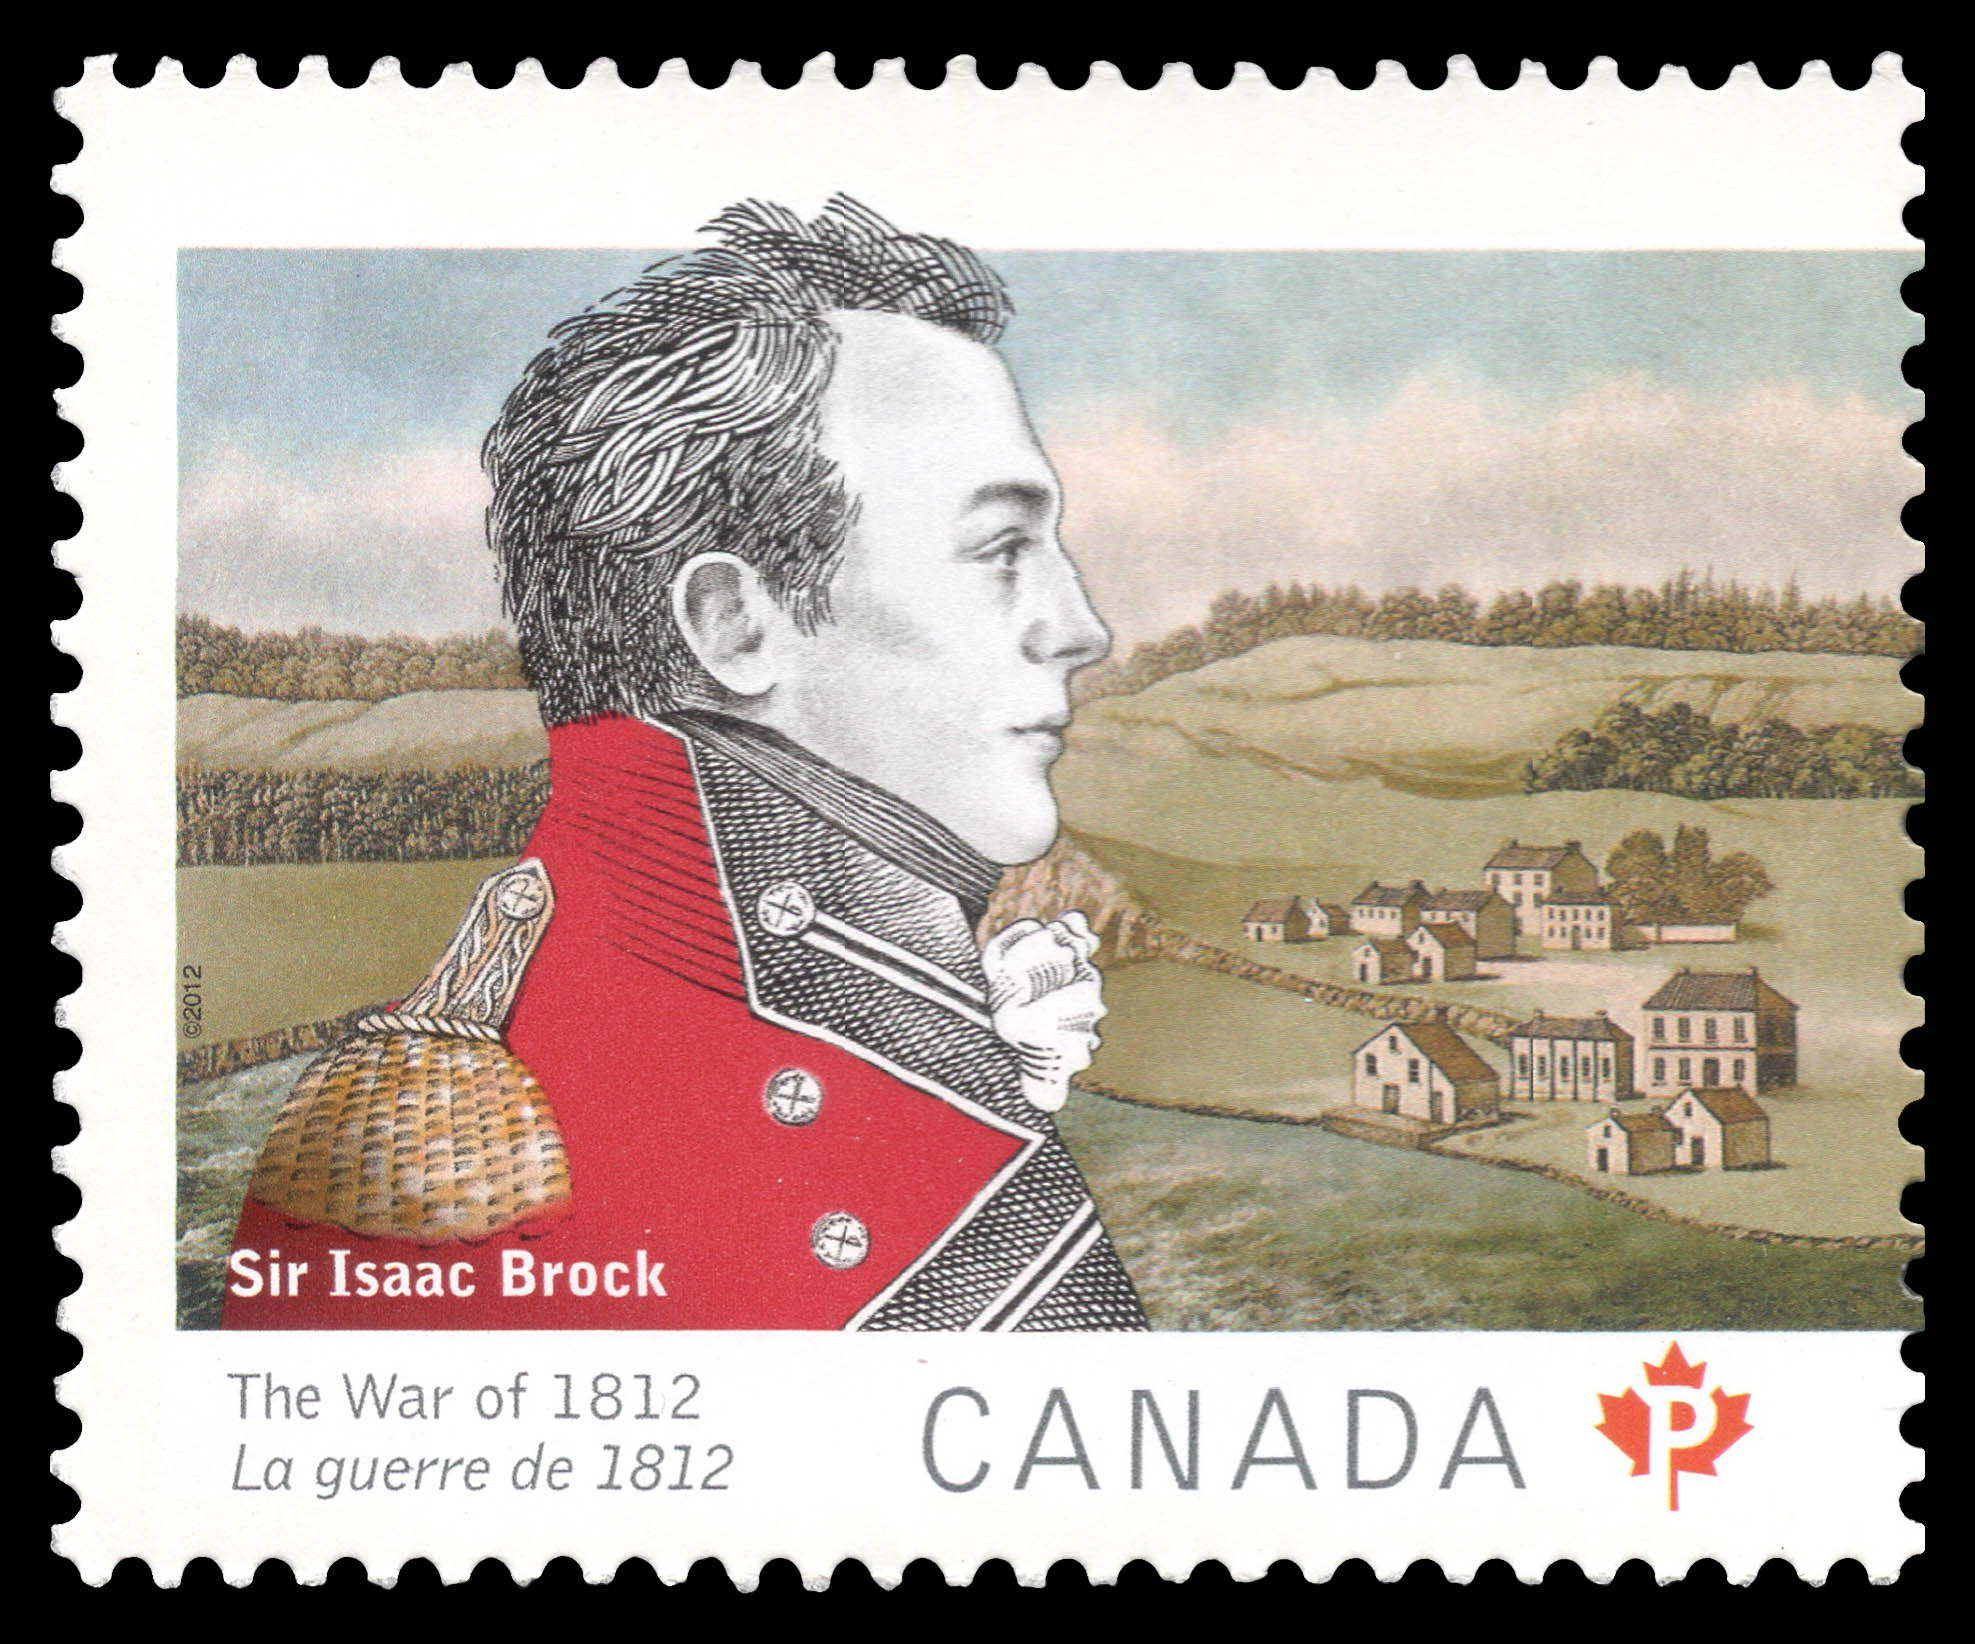 British Major-General Sir Isaac Brock Canada Postage Stamp | The War of 1812